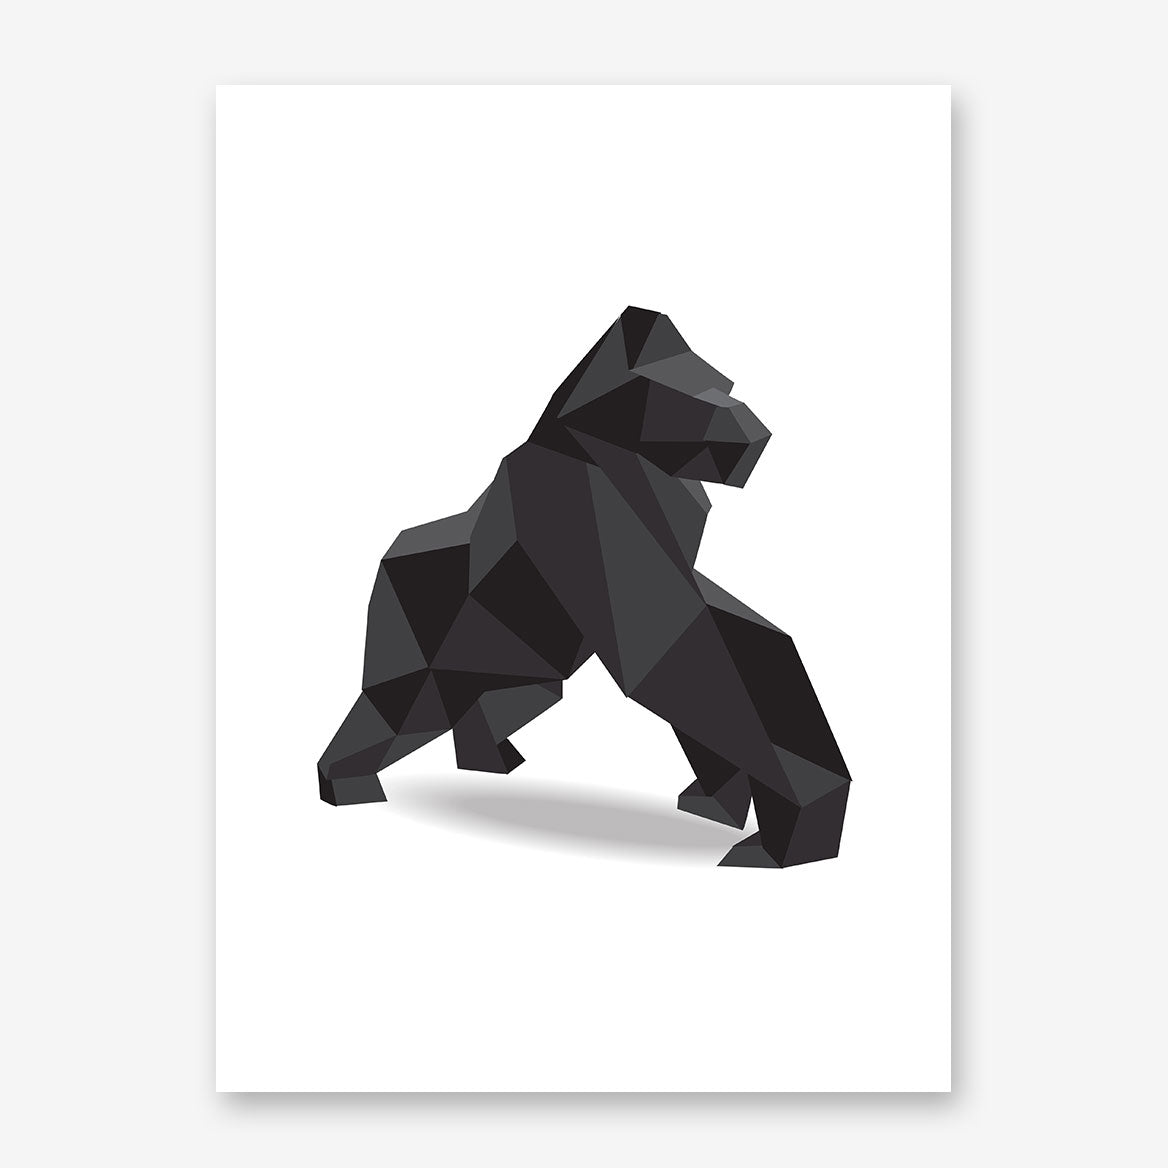 Geometric poster print with a 3D black gorilla on white background